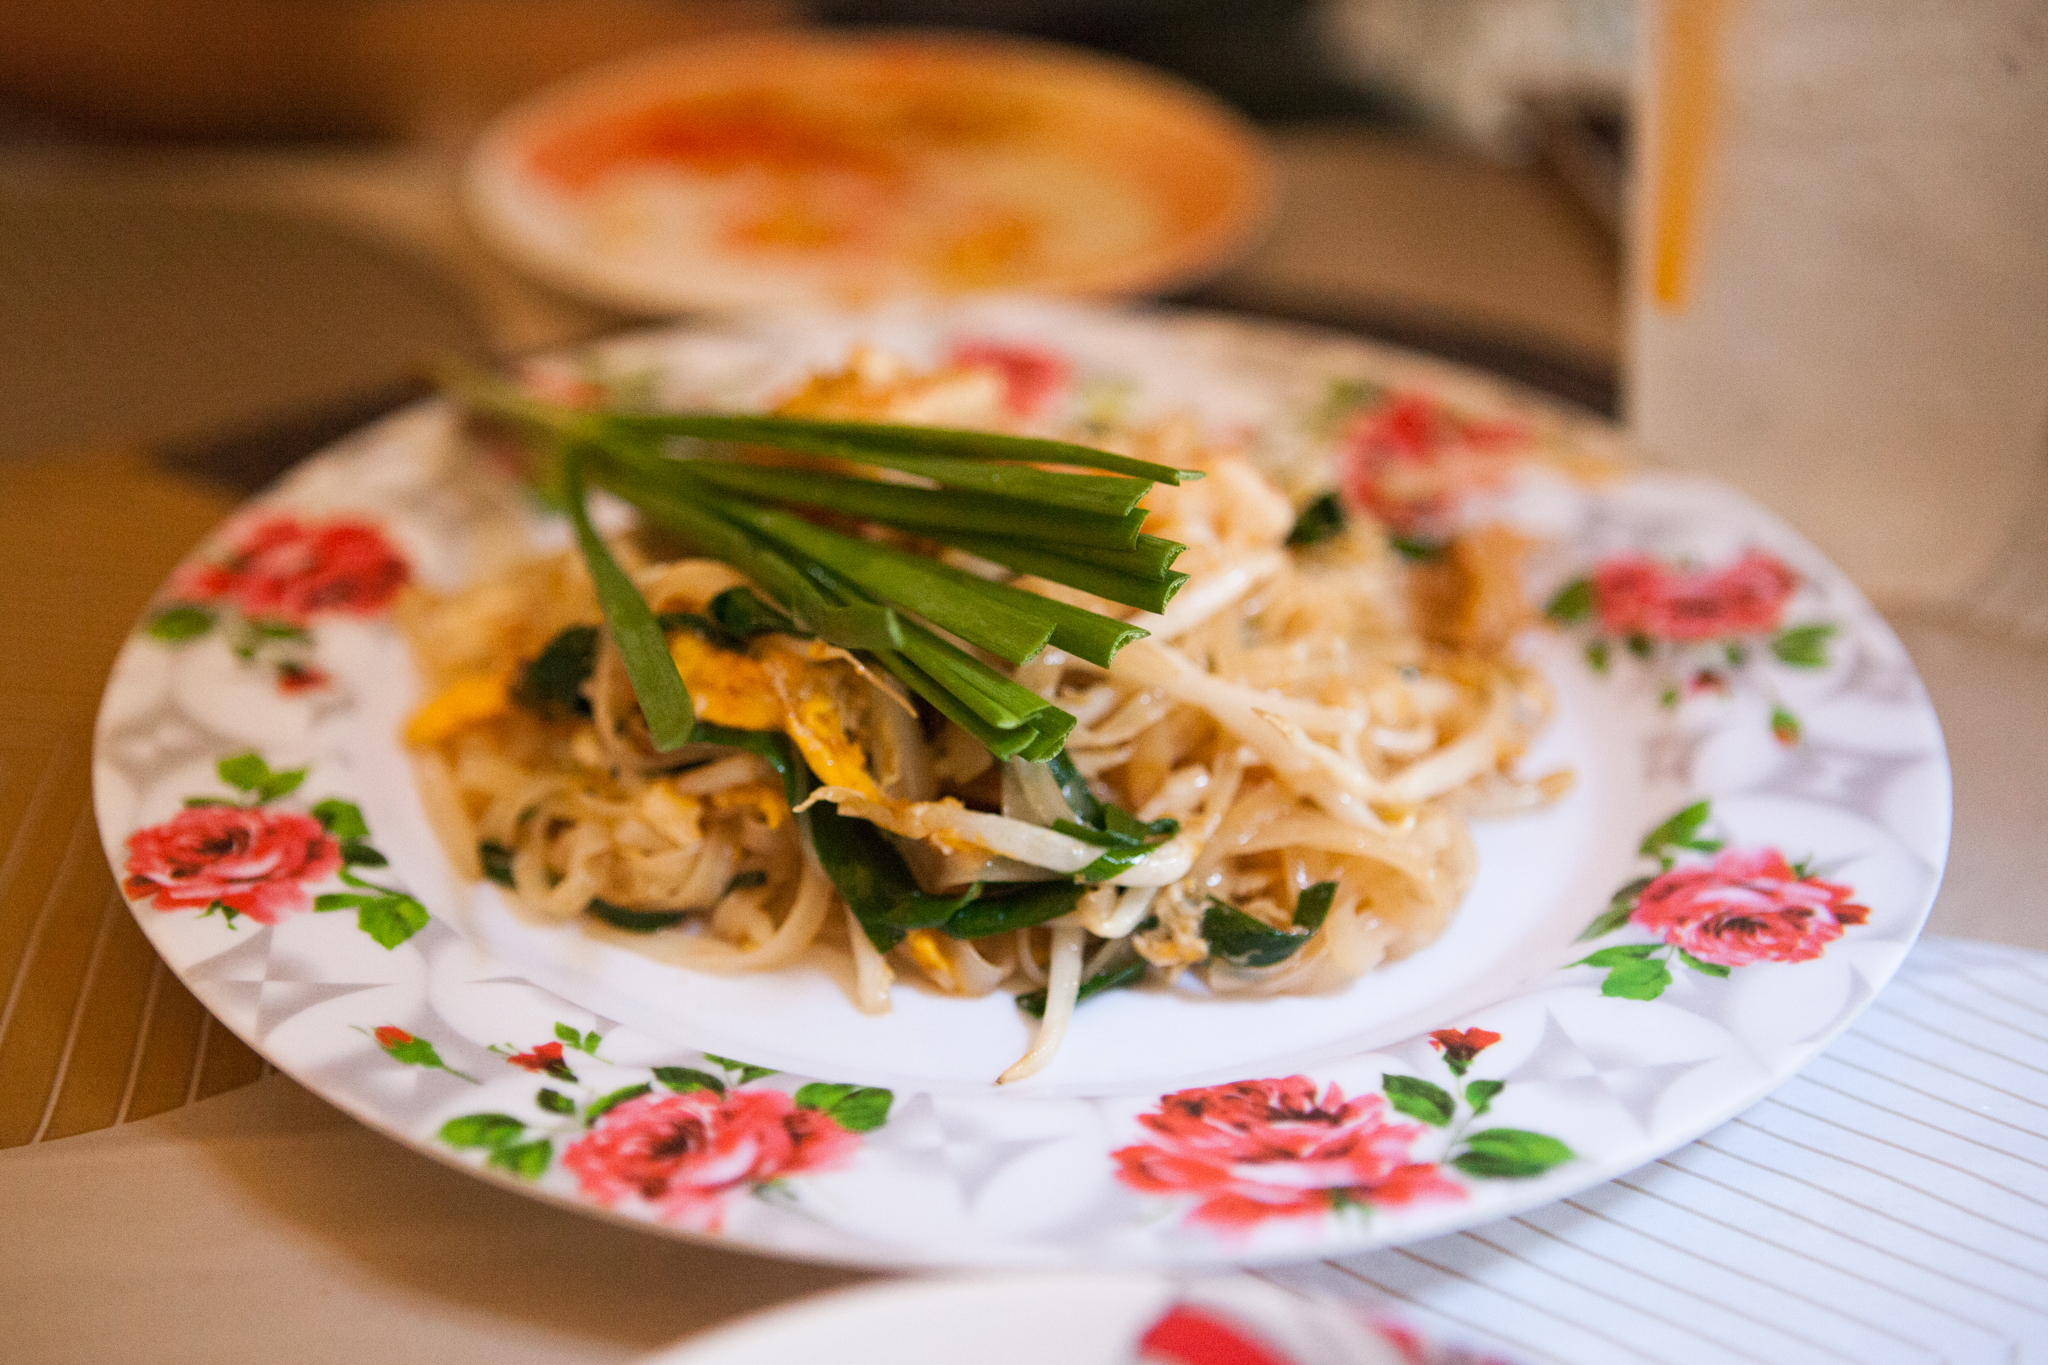 2016-10-23_Janette and Andrew_Thailand-36.jpg